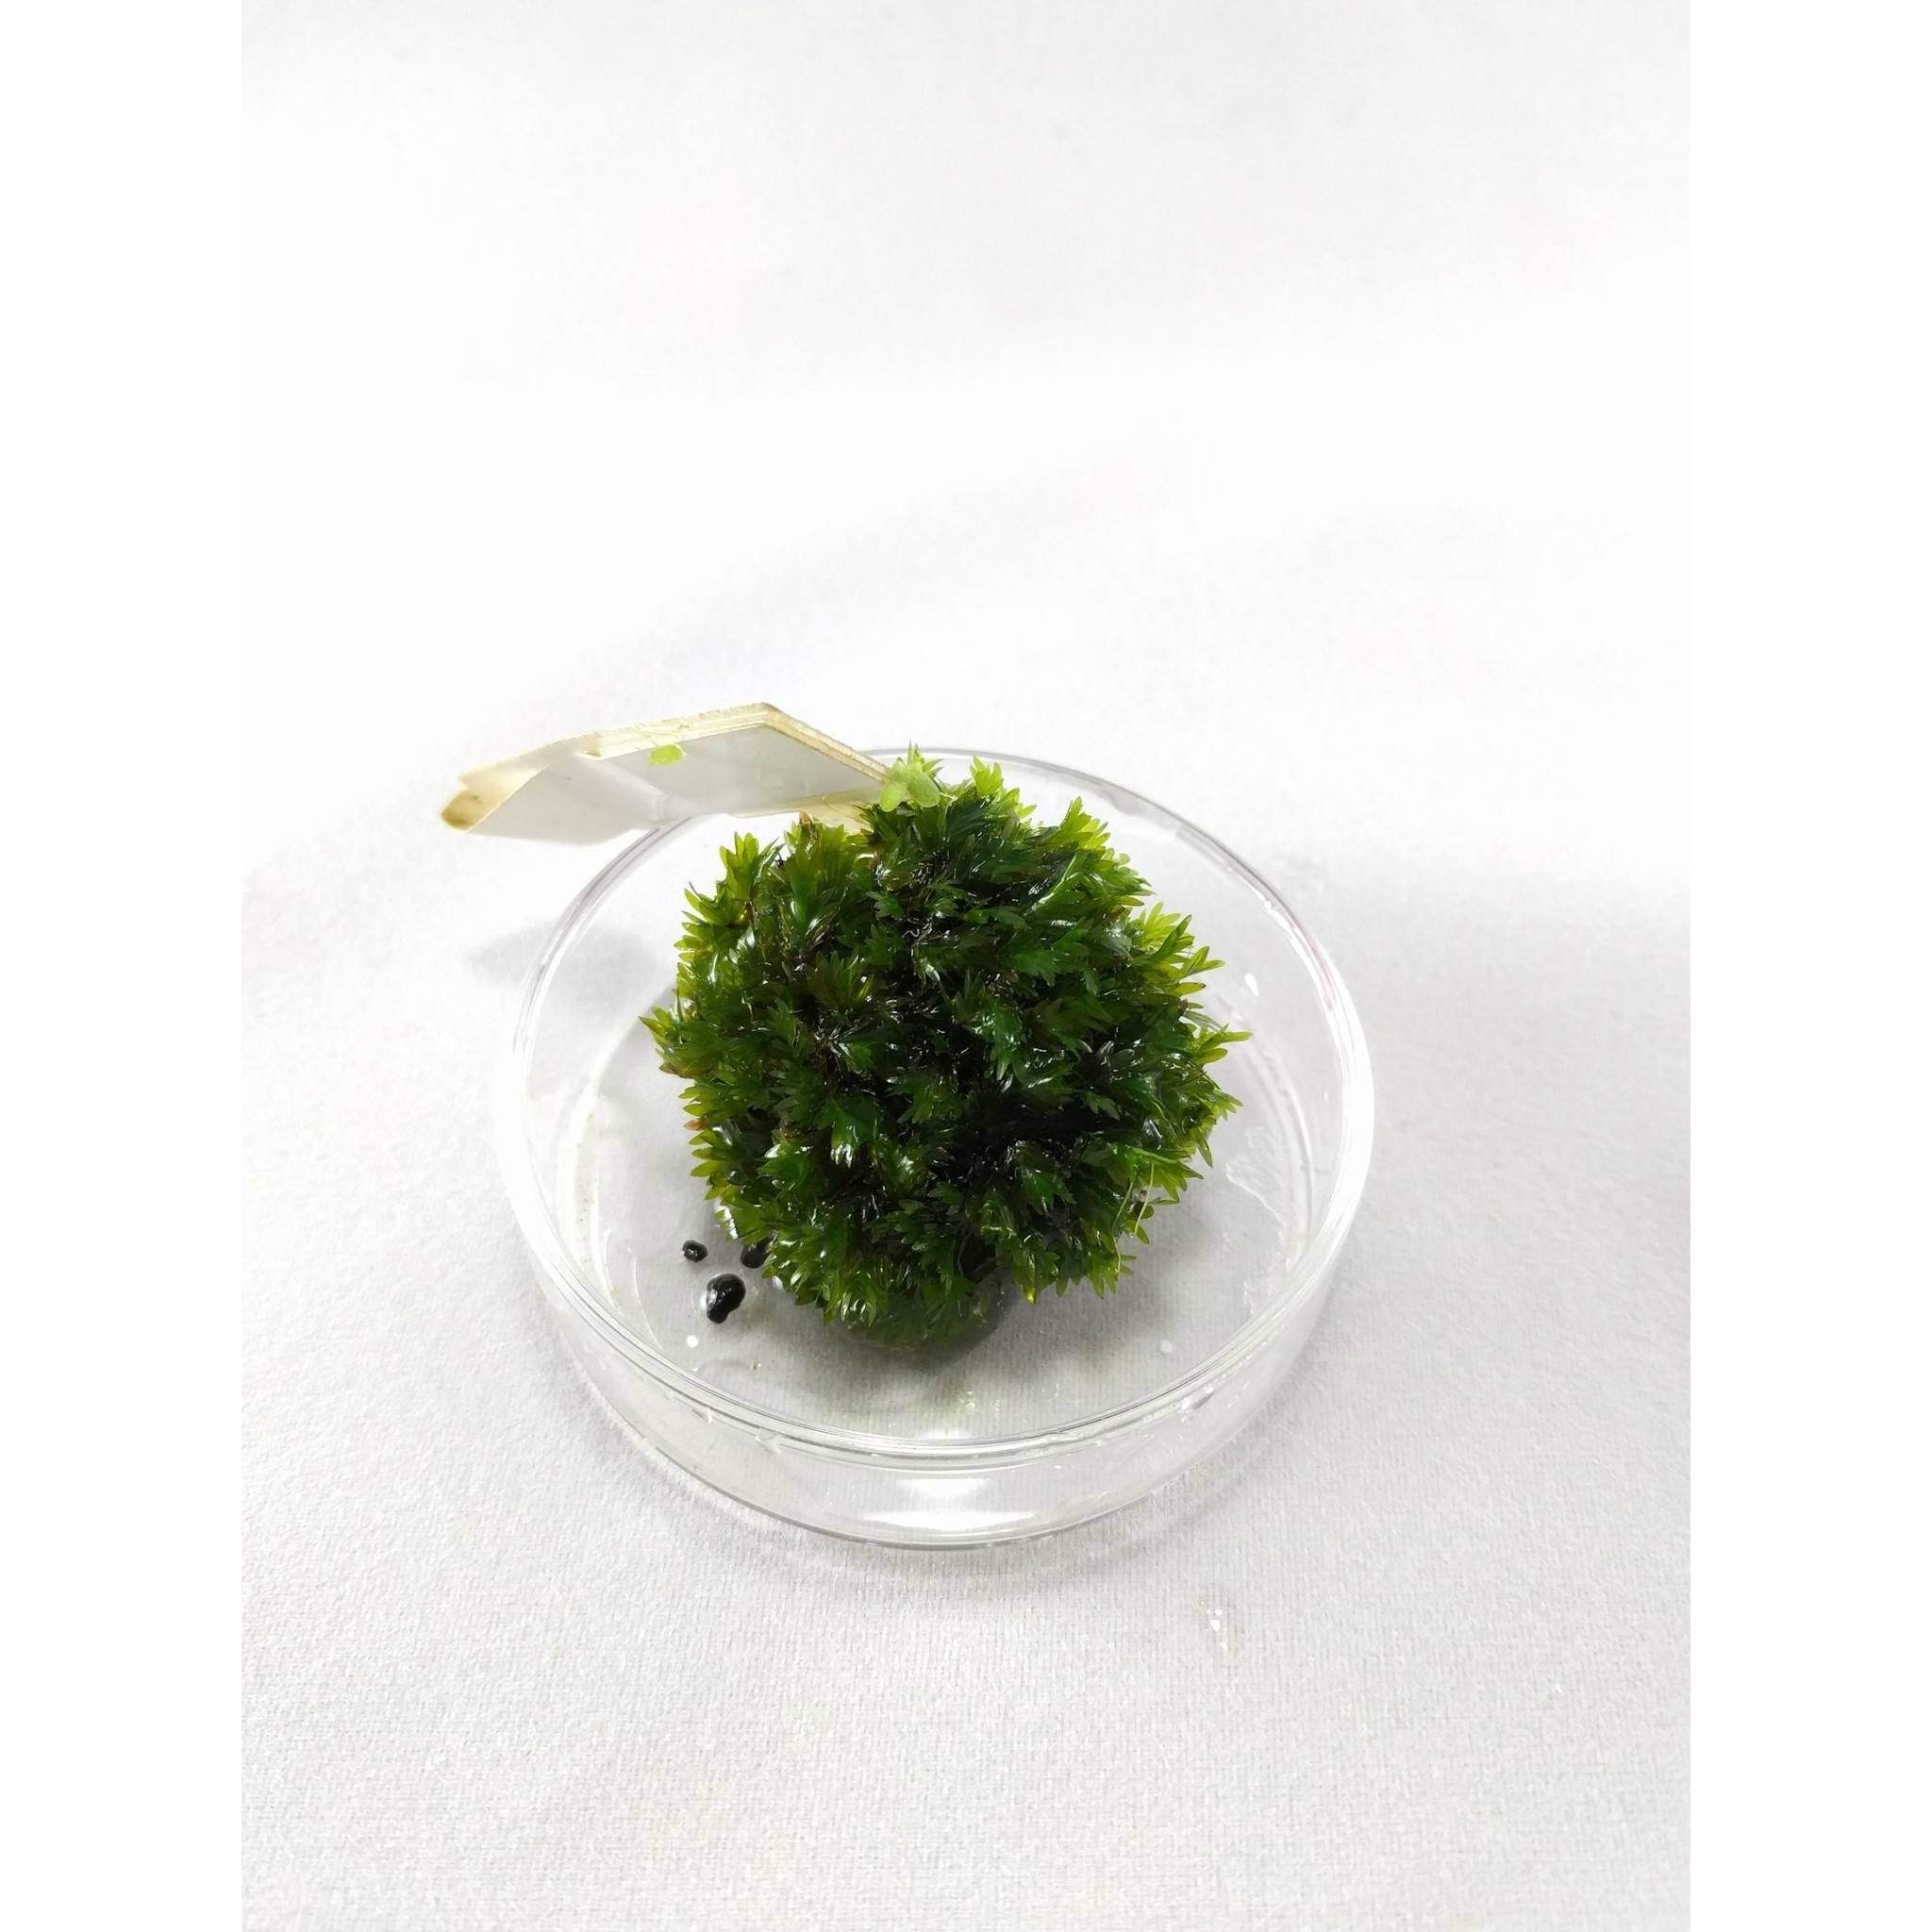 Plant - Fissidens Sp. Miroshaki Moss (Extremely Rare)